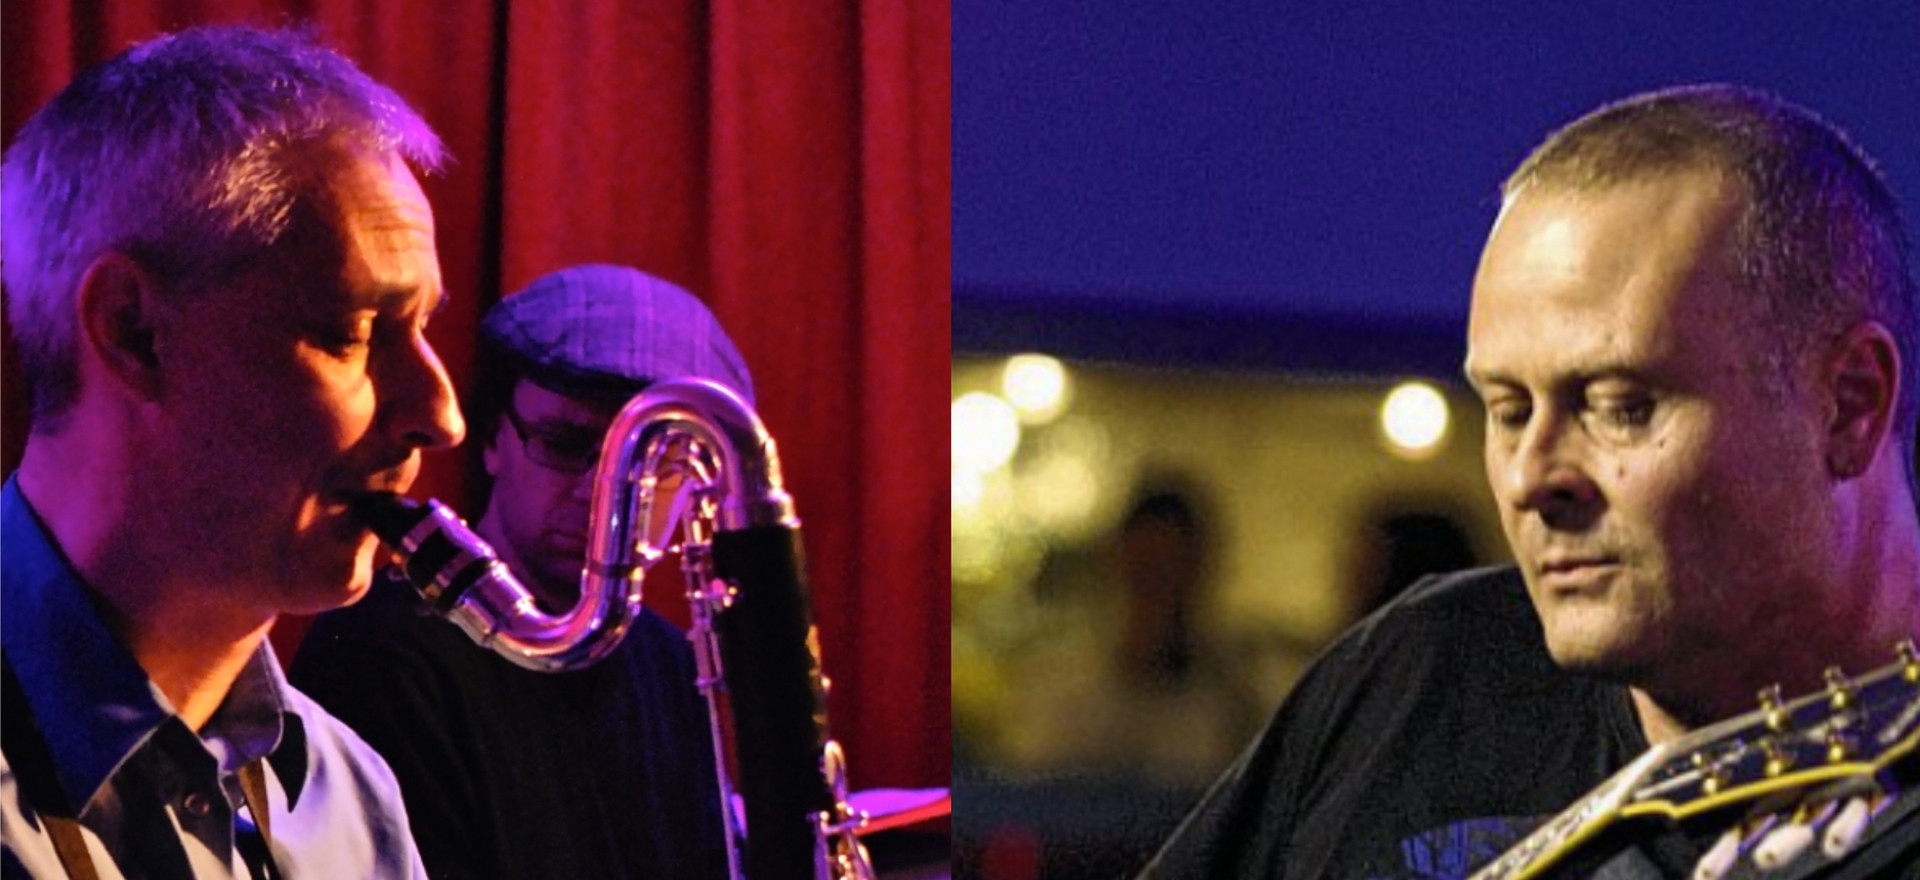 04.04. Live Swing, Latin Jazz & much more